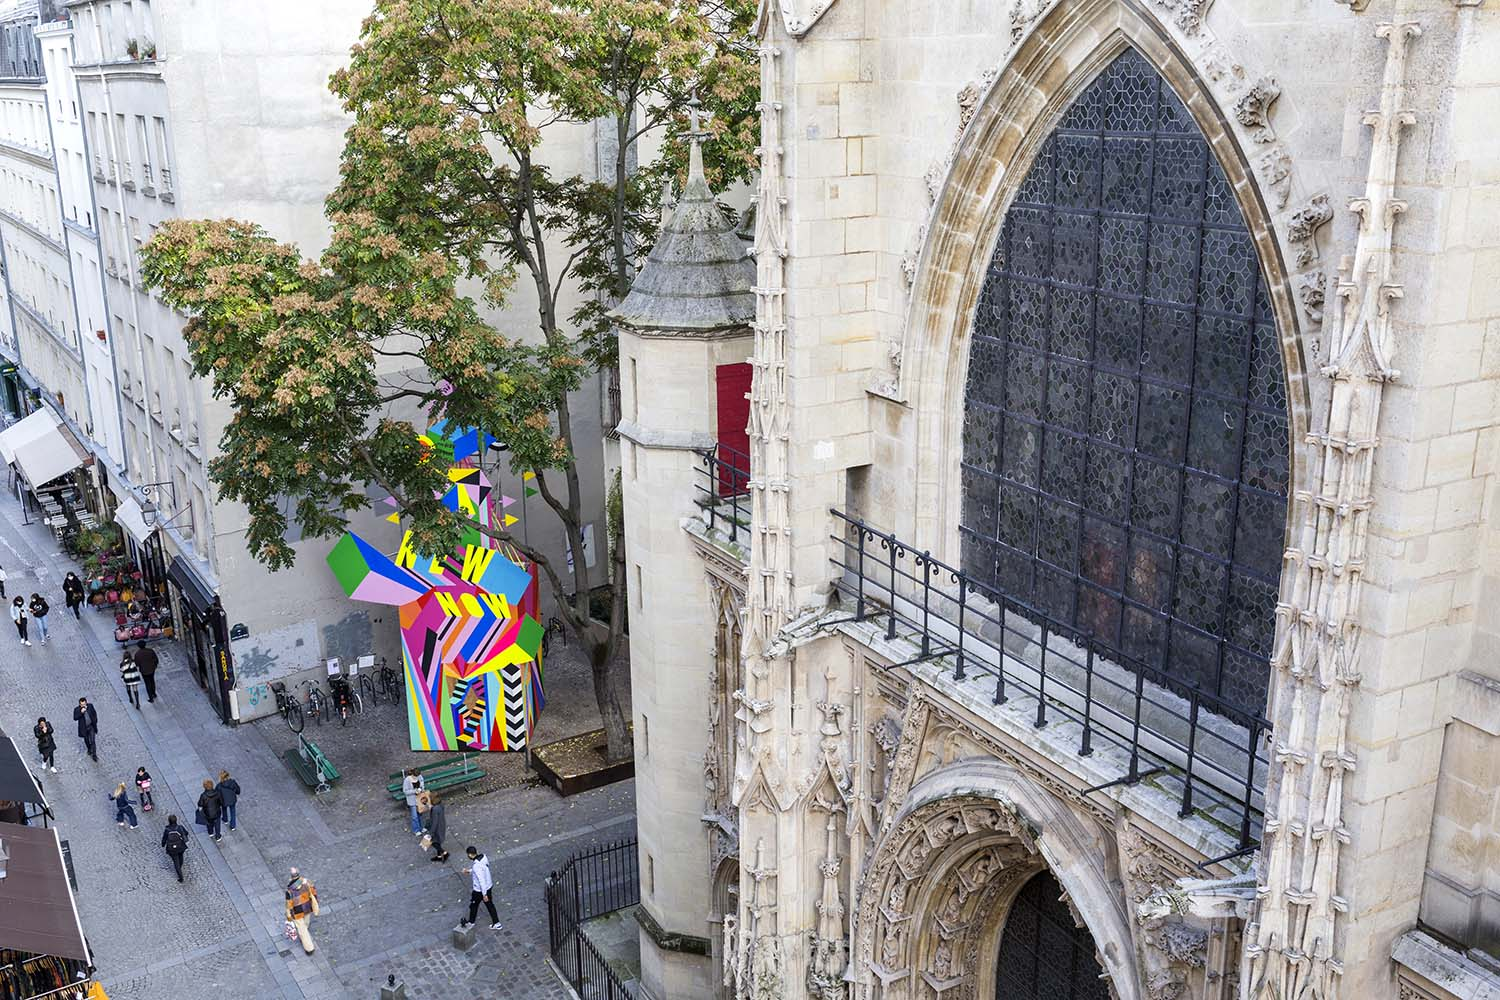 Morag Myerscough, A NEW NOW Public Art Installation in Paris with 6M3 Collective